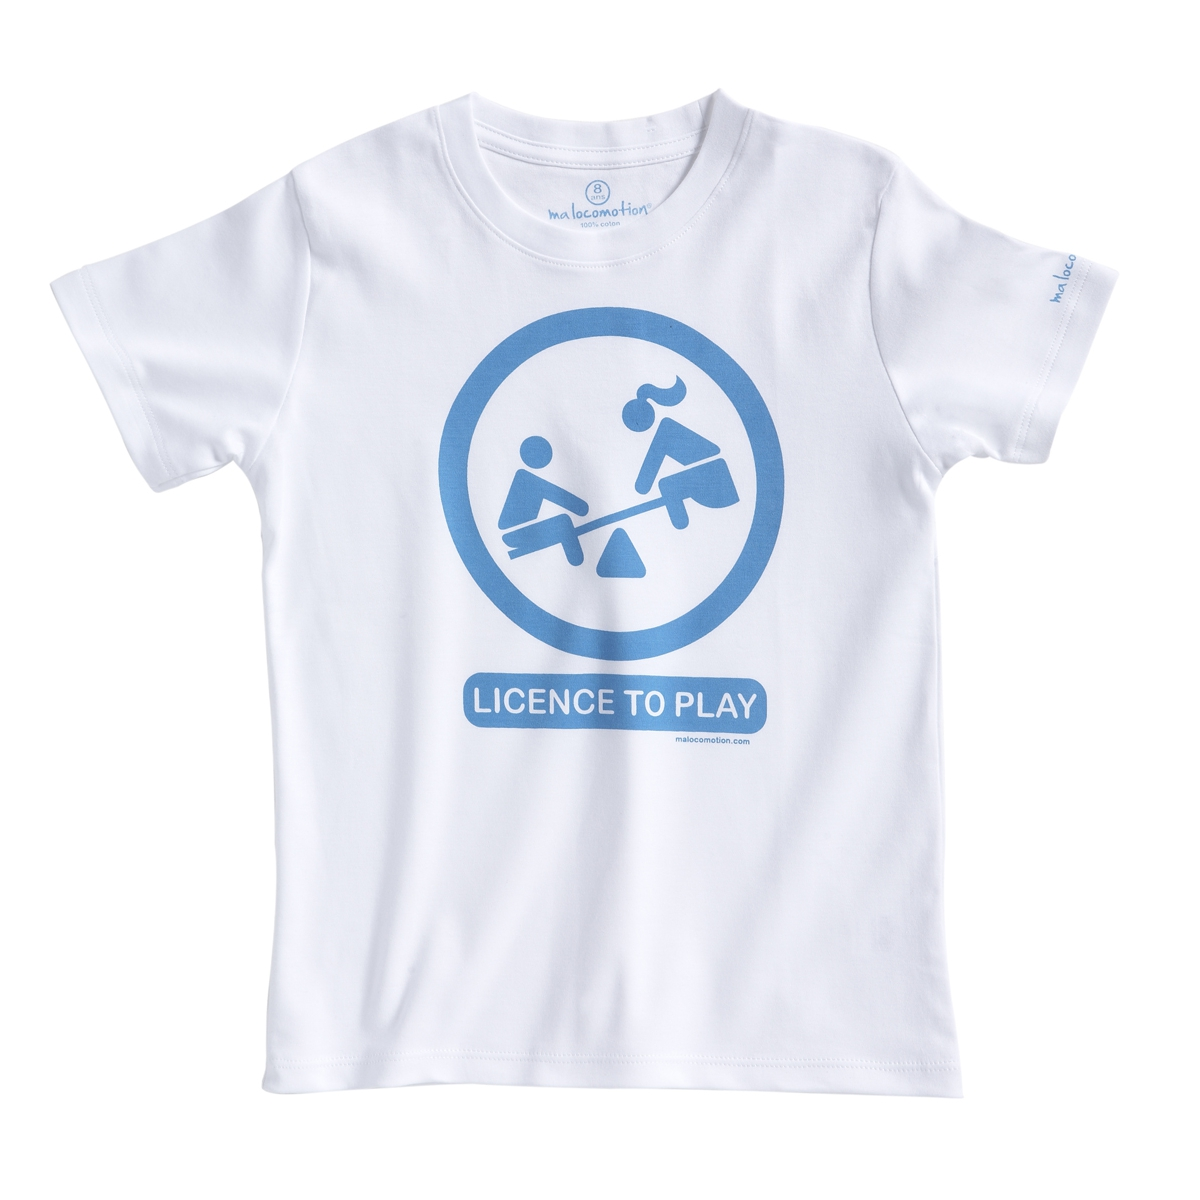 Licence to play t-shirt - blue